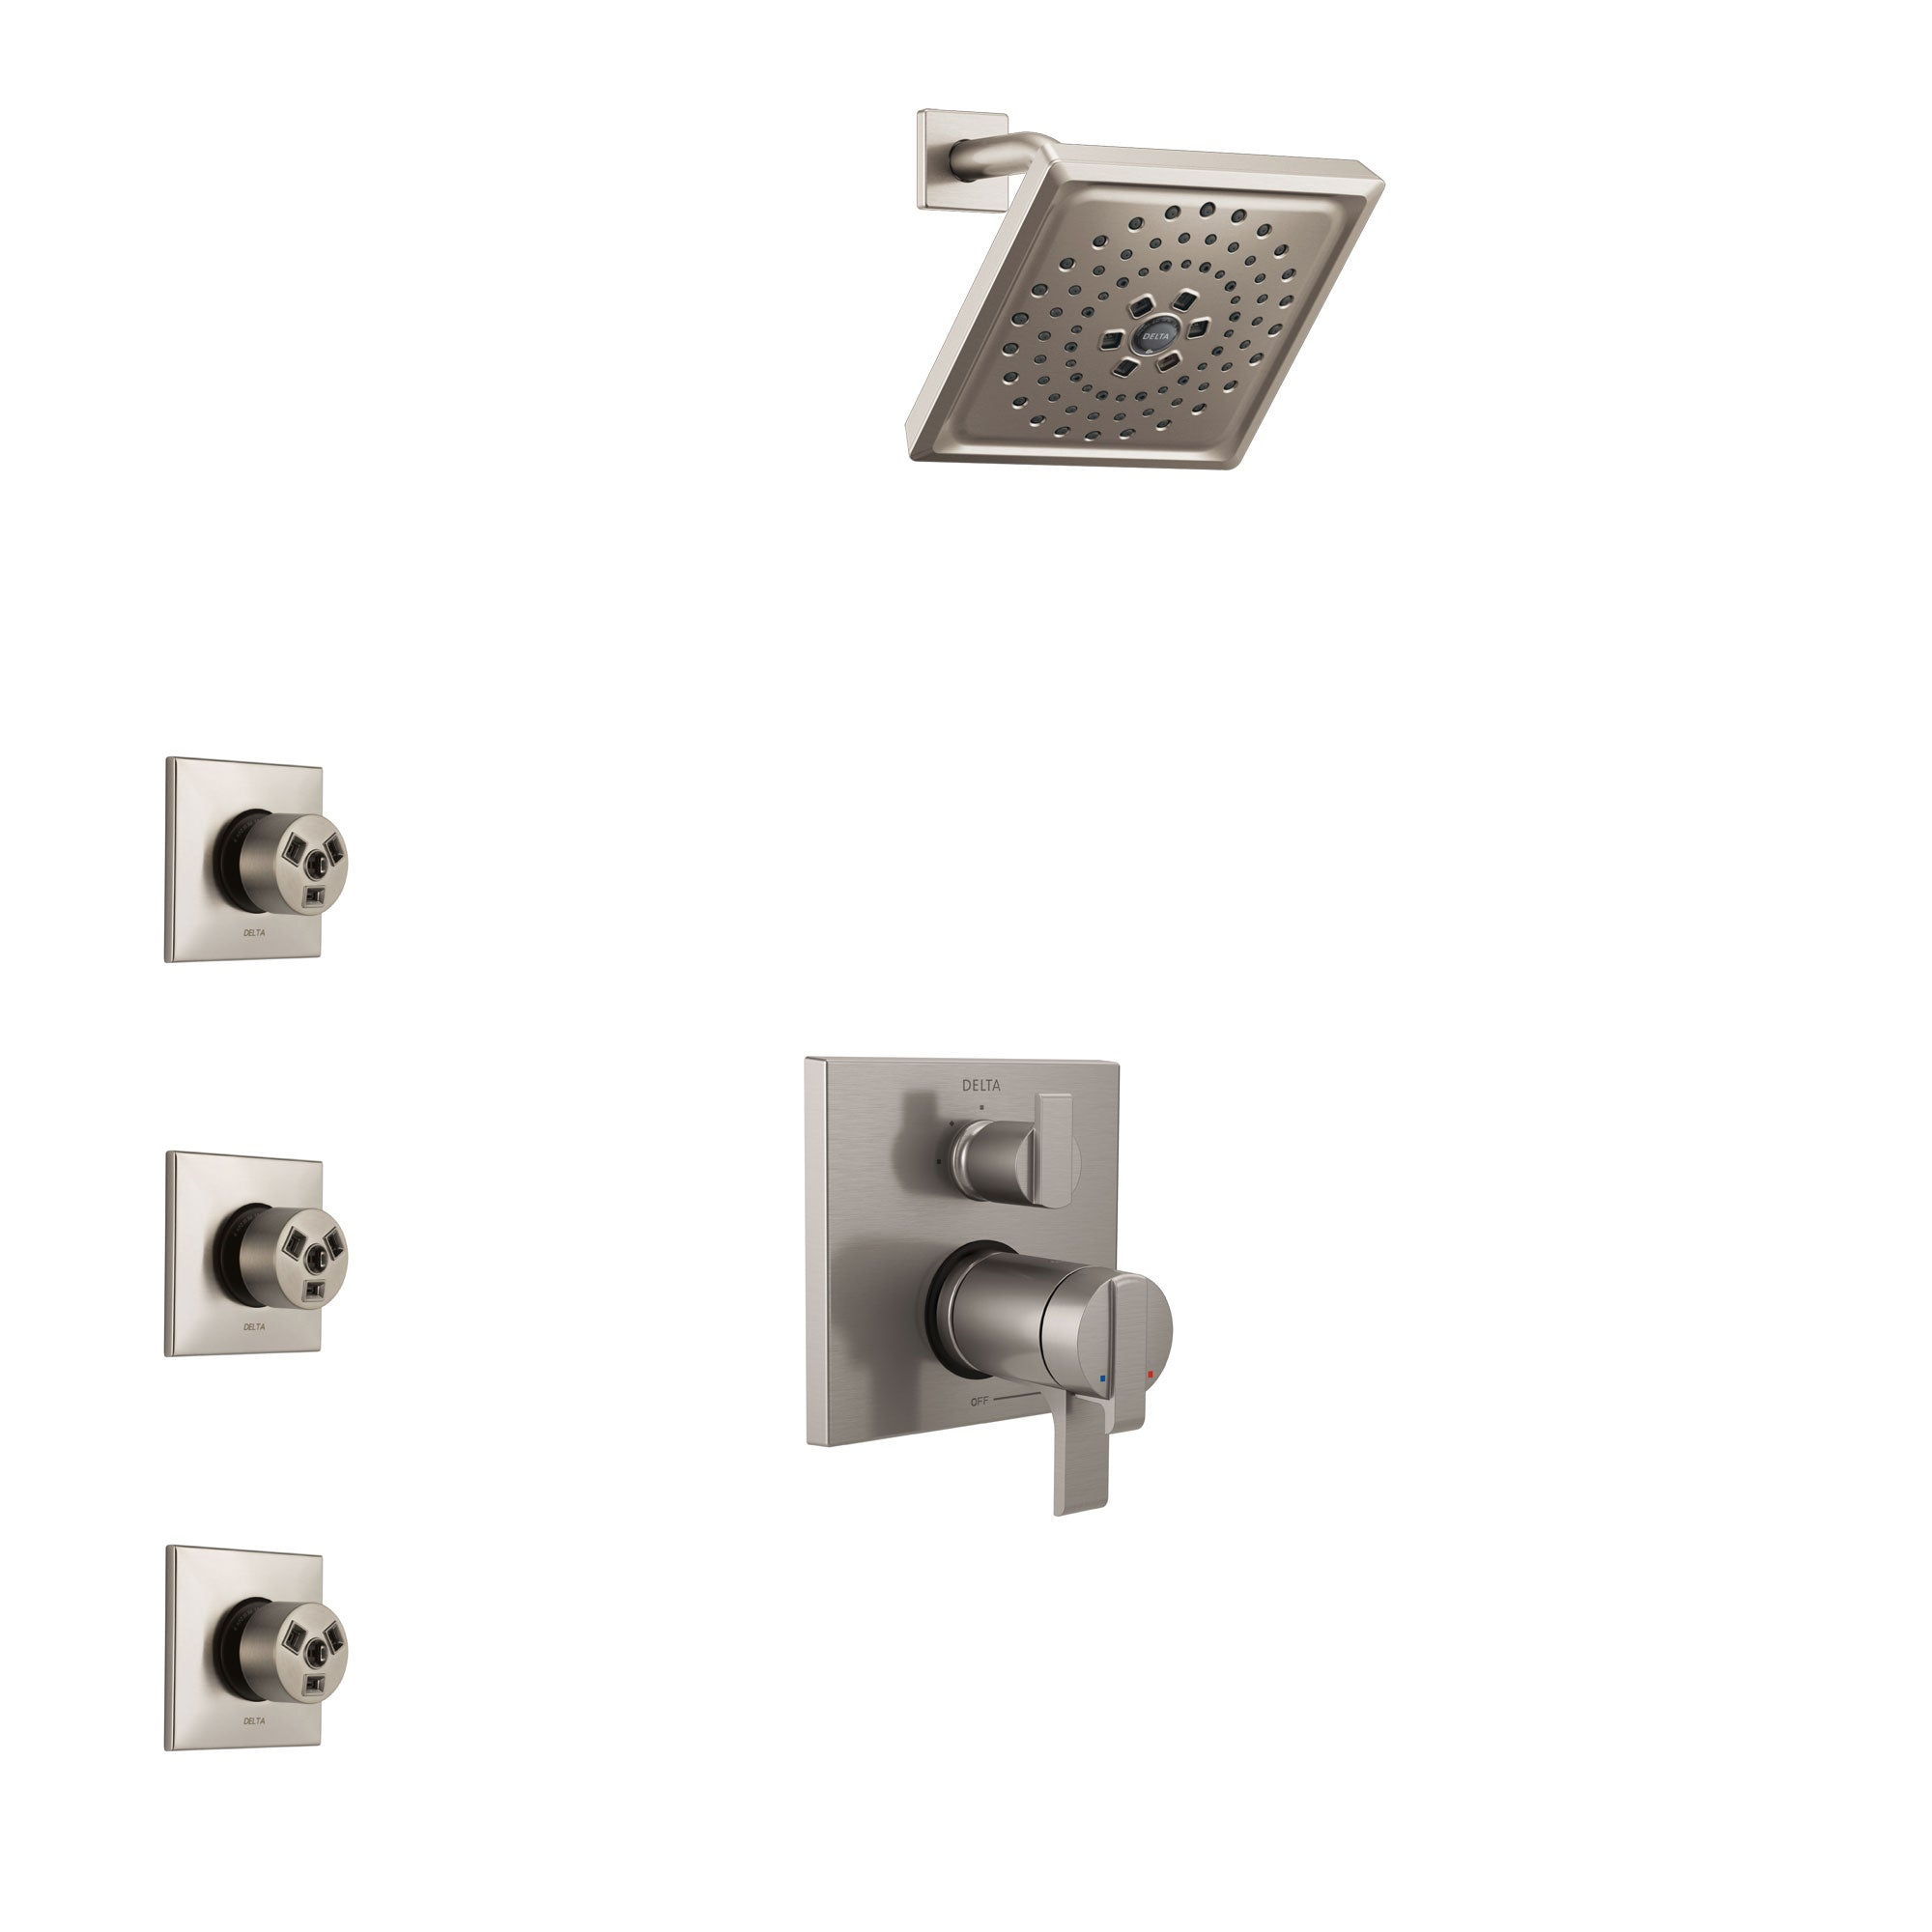 Delta Ara Dual Thermostatic Control Handle Stainless Steel Finish Shower System, Integrated Diverter, Showerhead, and 3 Body Sprays SS27T867SS12